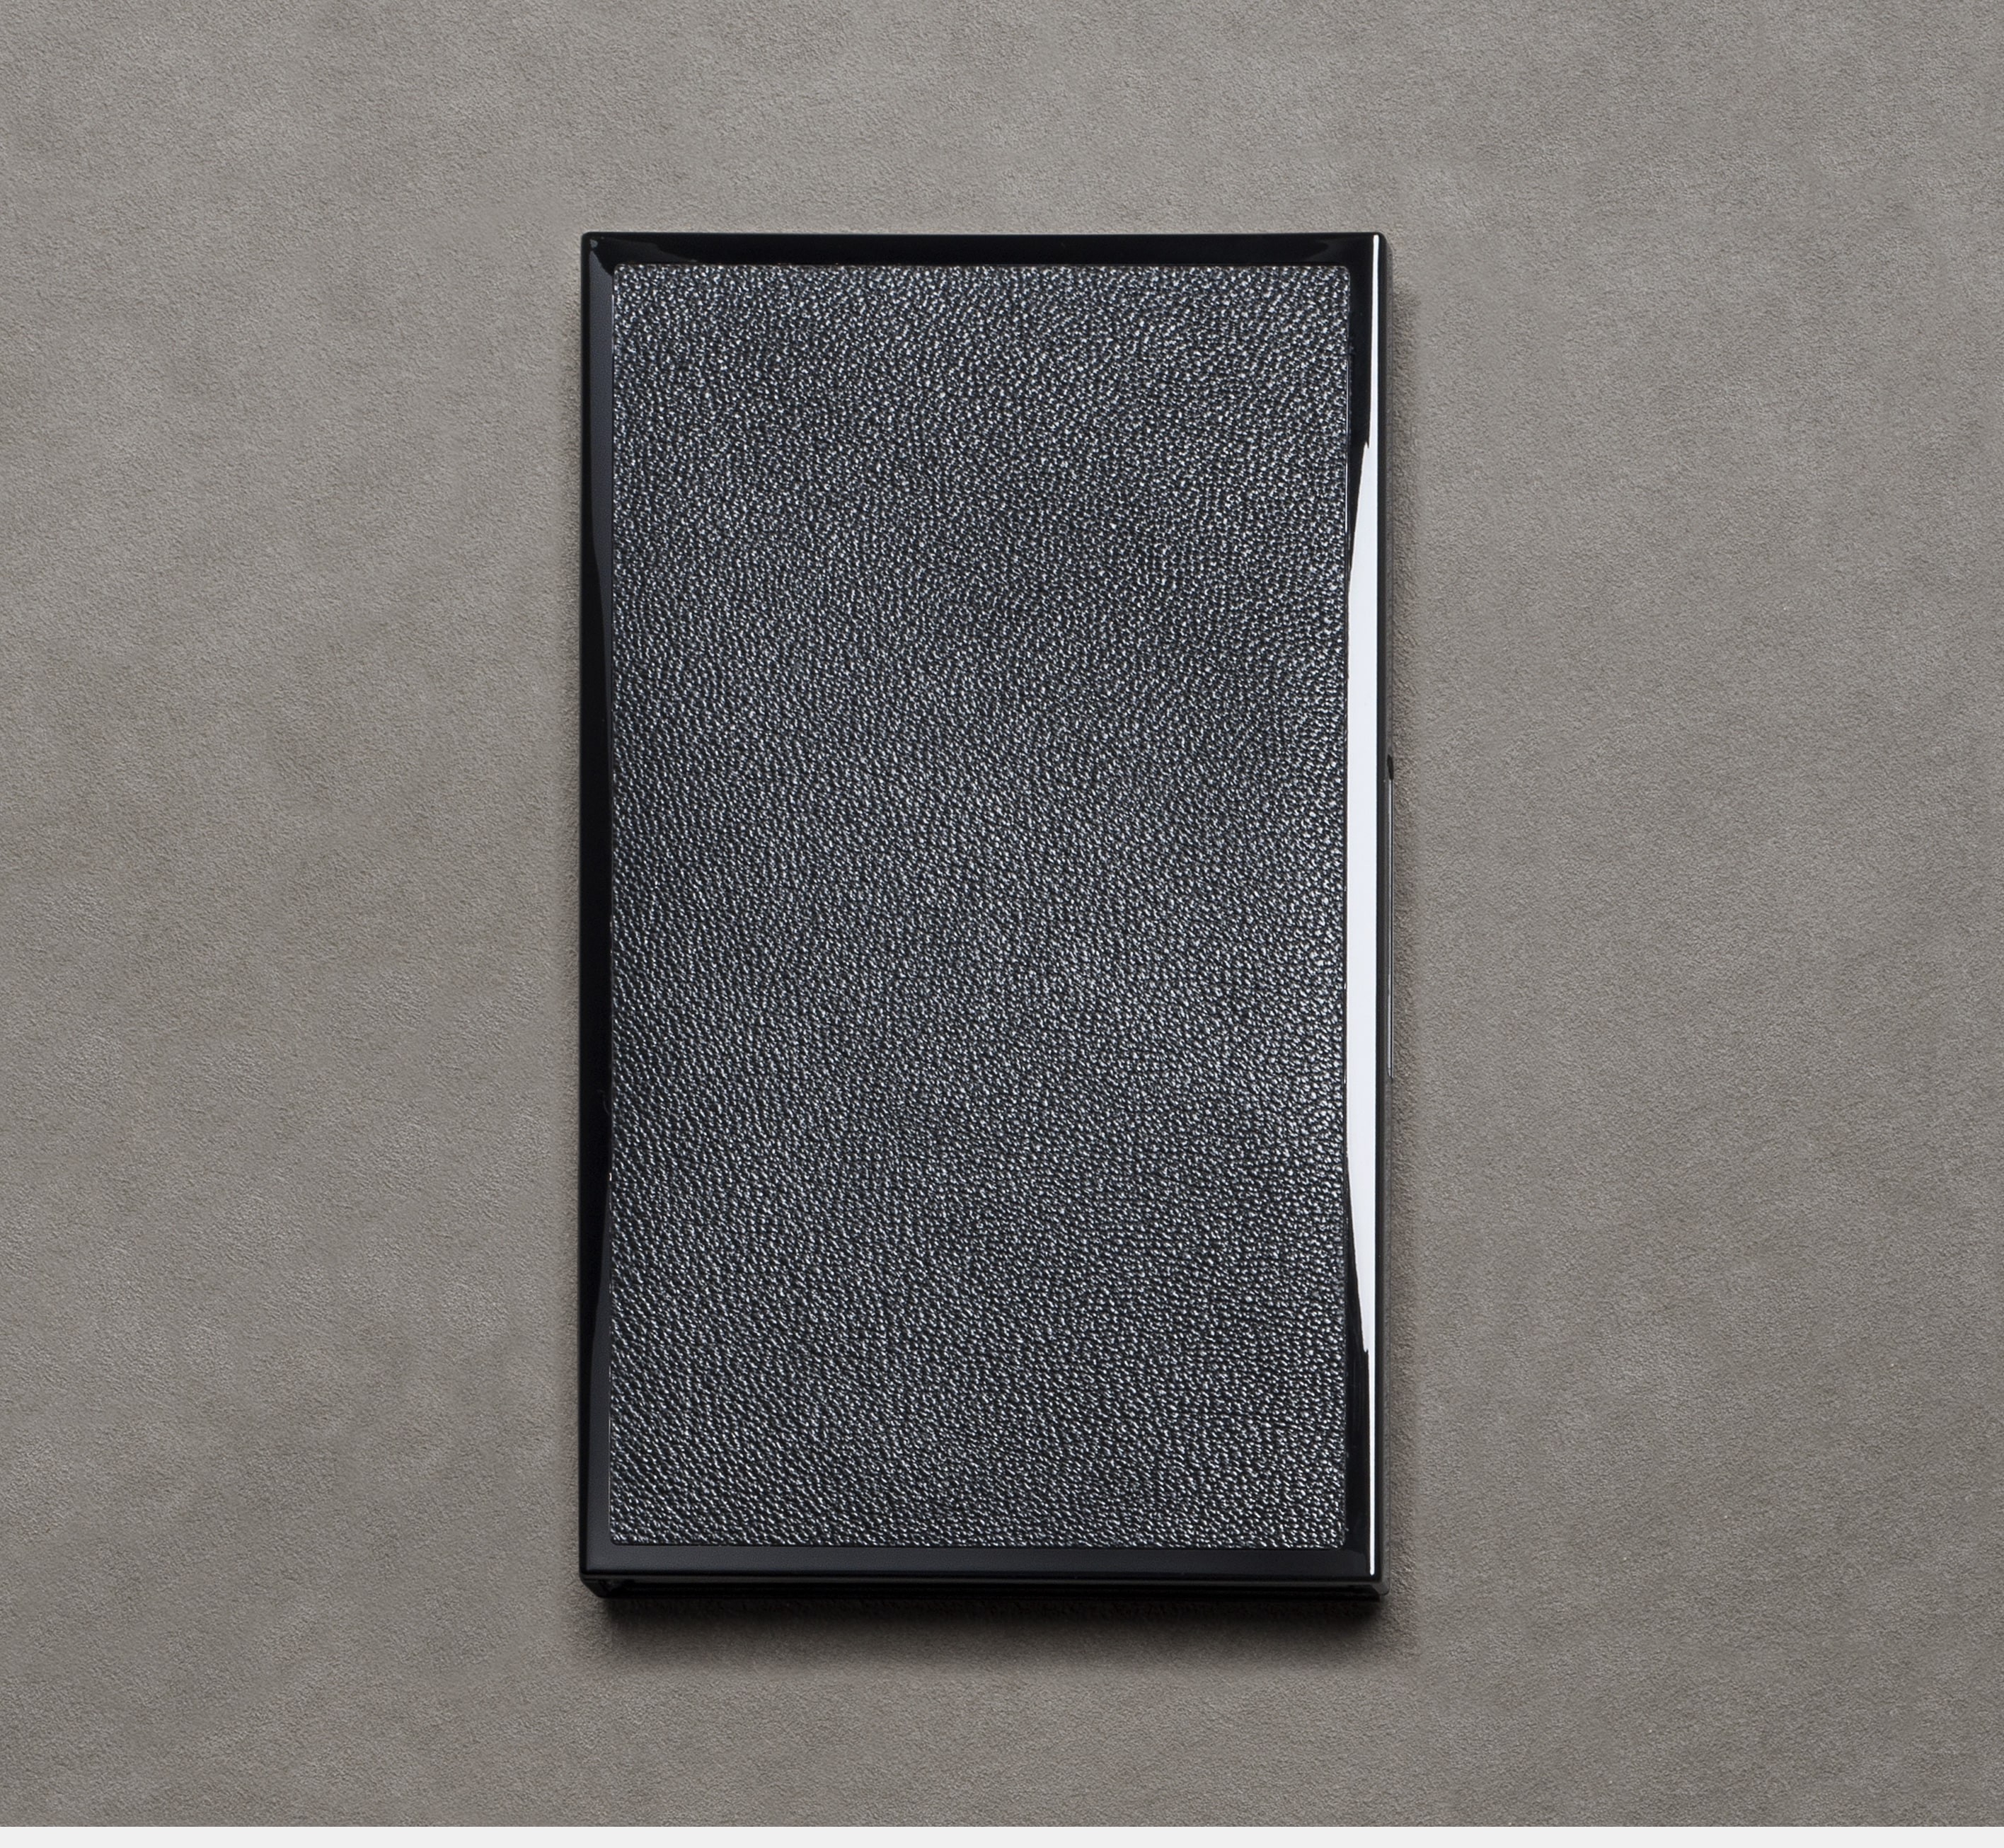 Le Carnet 08.16 Black lacquered embedded with leather